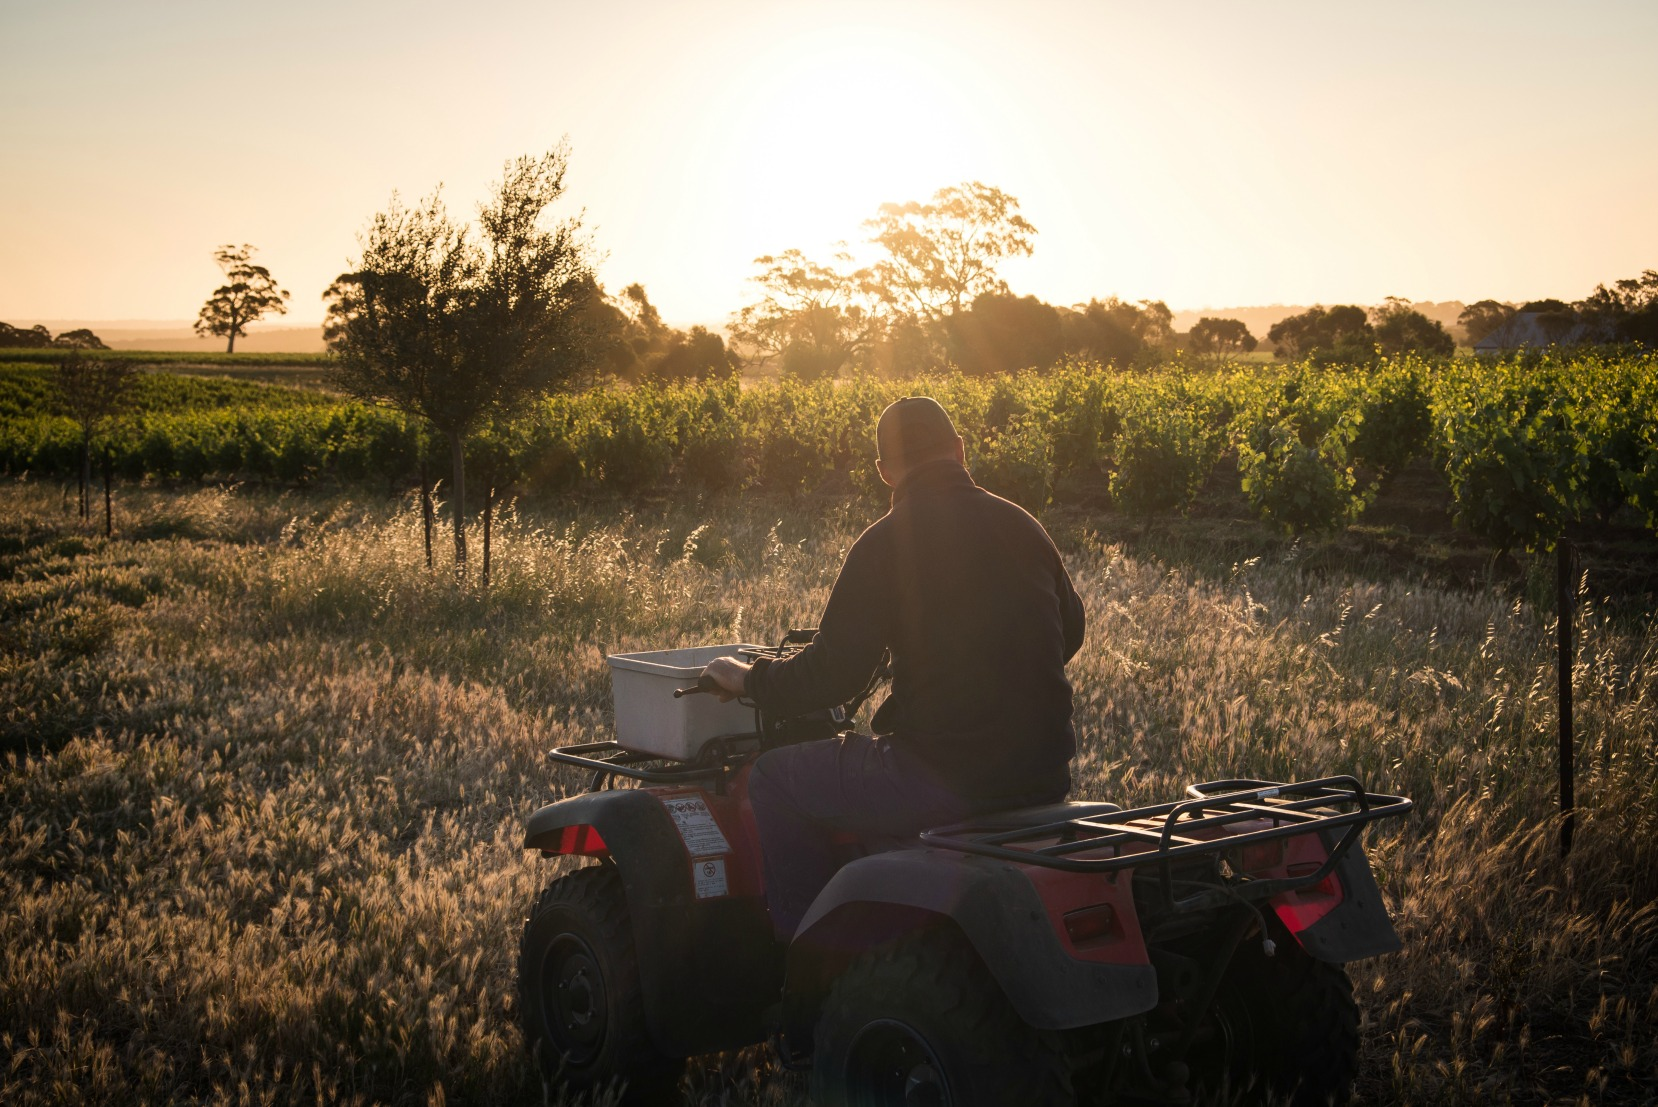 James heading out to the vineyard on his trusty quad bike.